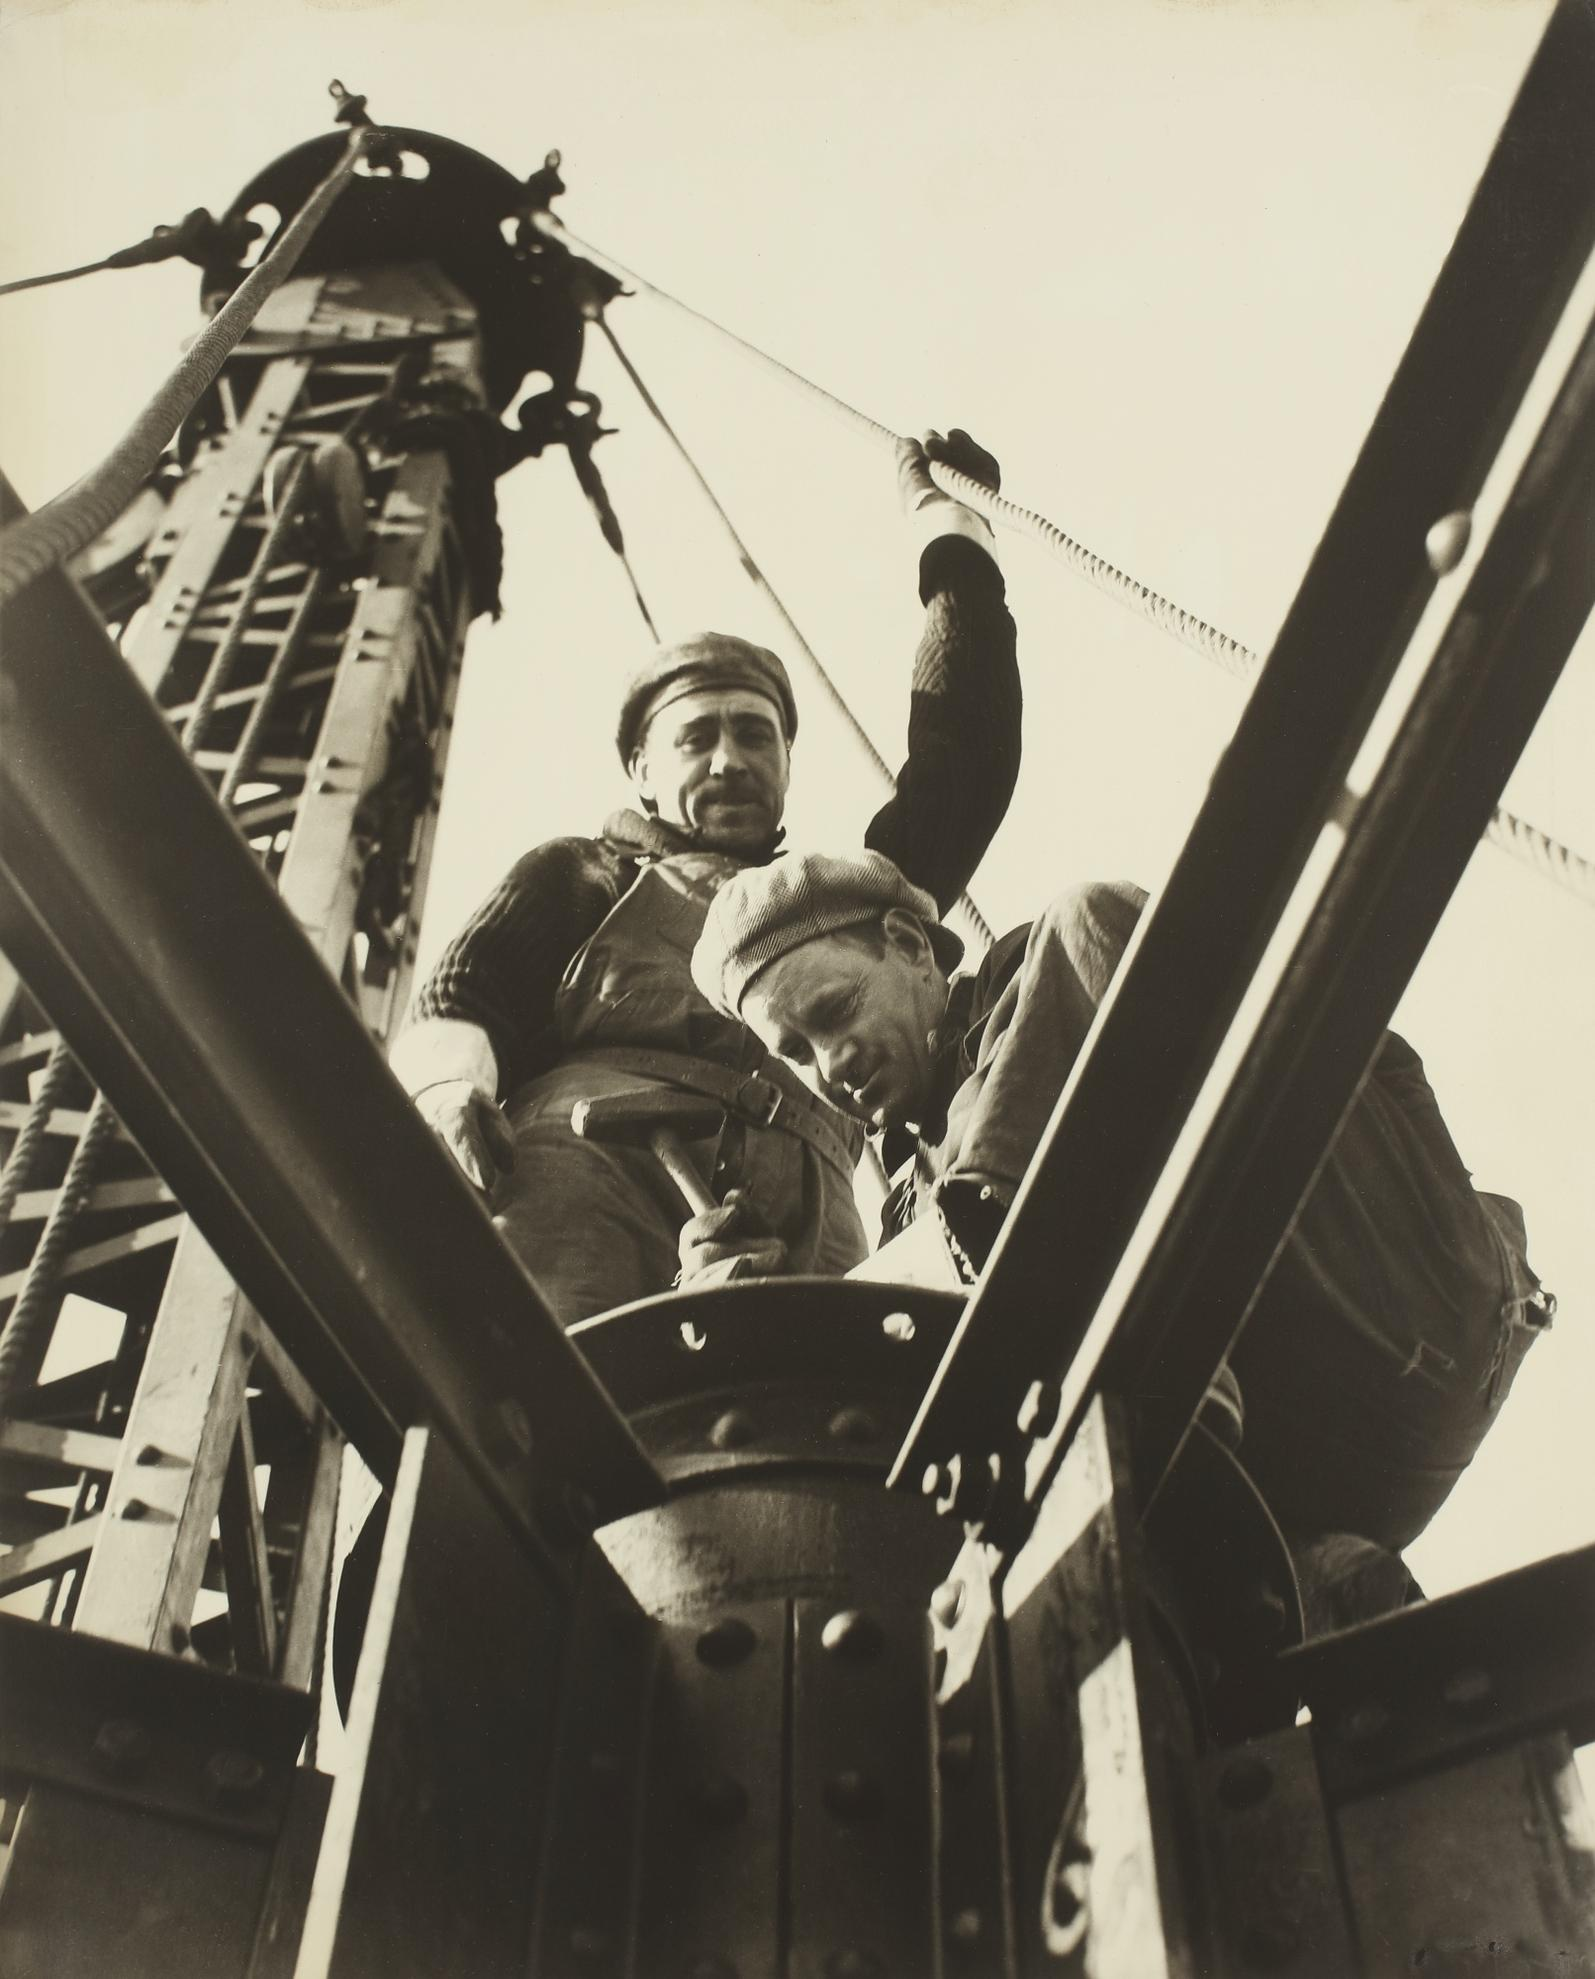 Lewis Wickes Hine-The Mcclain Brothers (On The Mooring Mast, Empire State Building)-1930